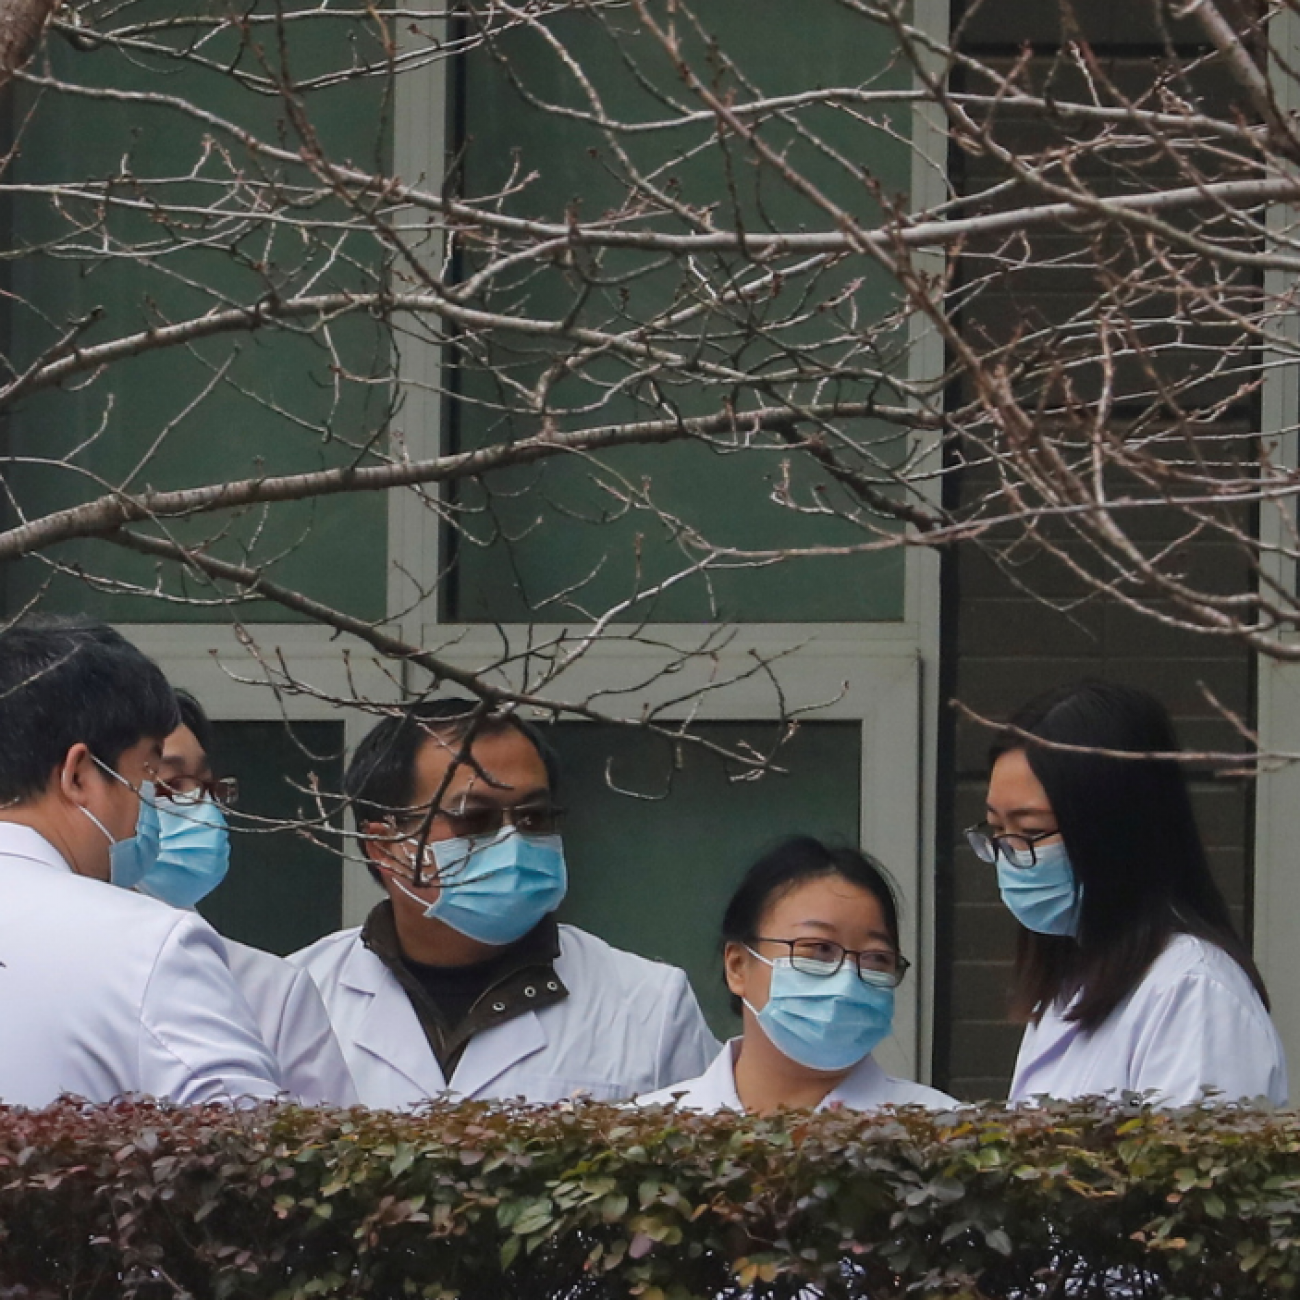 Chinese scientists and officials wait at the Hubei Animal Epidemic Disease Prevention and Control Center during a visit with a World Health Organization (WHO) team investigating the origins of COVID-19, in Wuhan, Hubei province, China, on February 2, 2021.